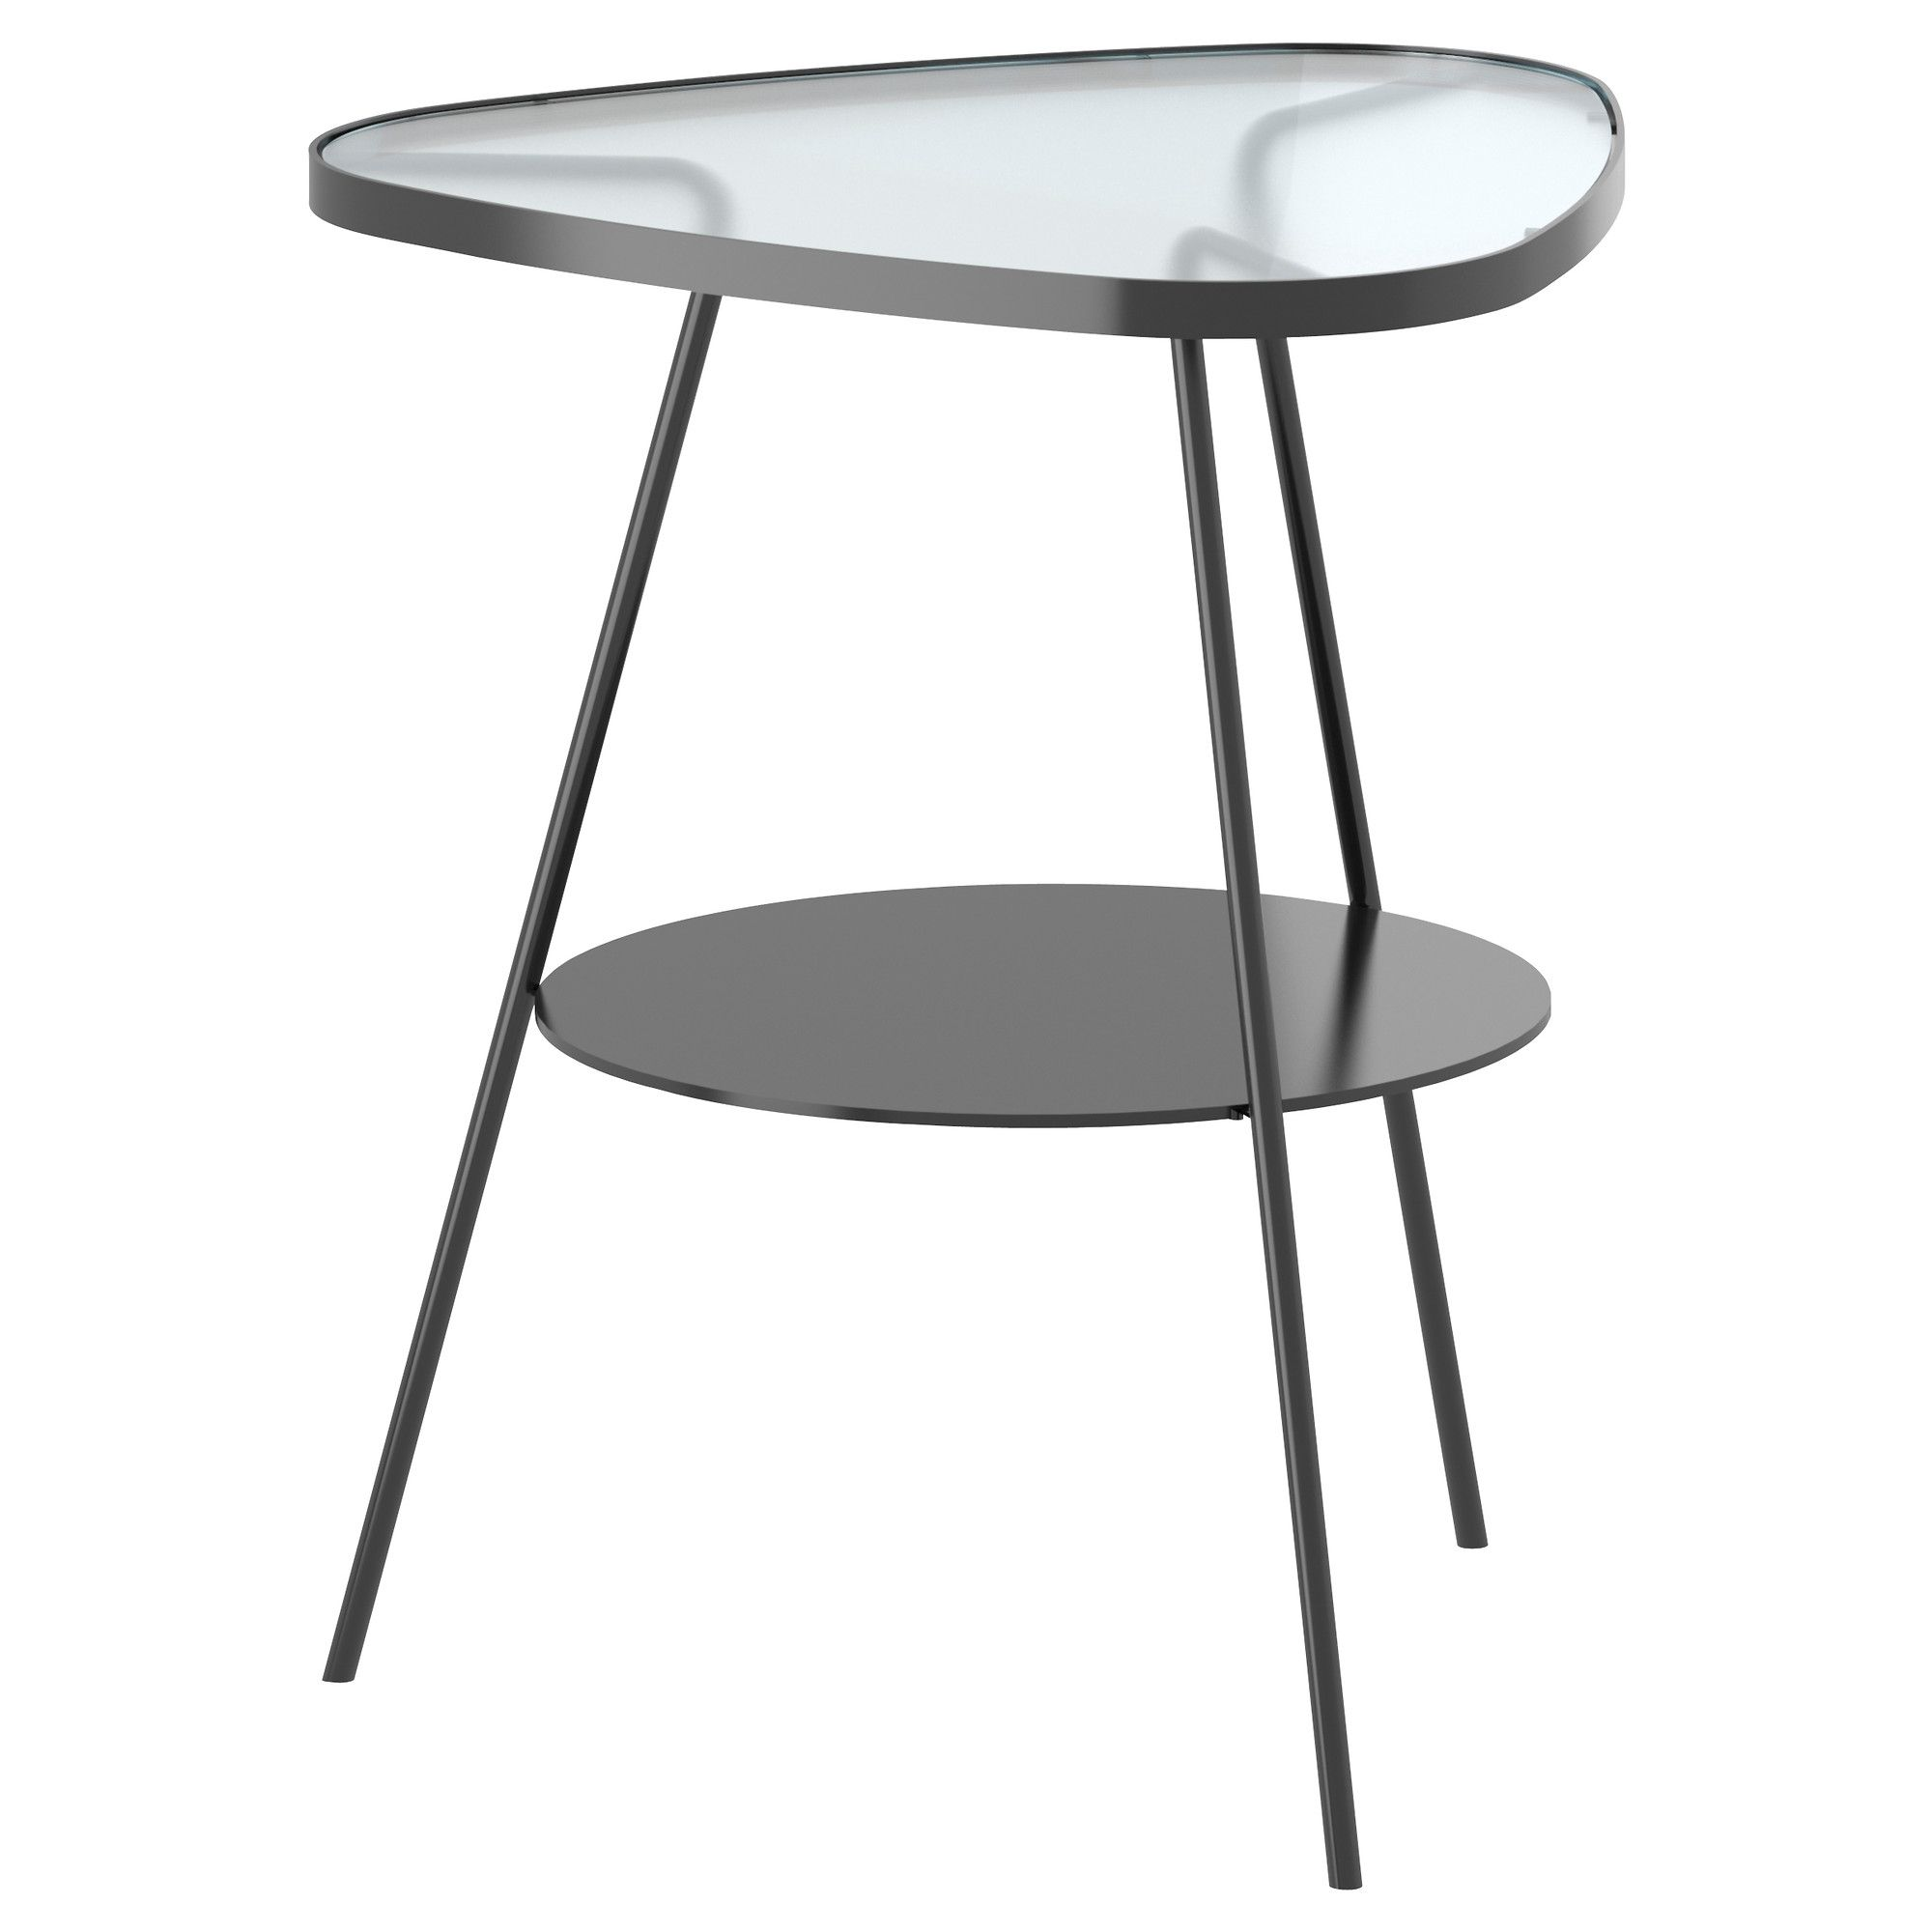 Triangle Glass Side Table Bedside Table Ikea Round Metal Side Table Ikea Nightstand